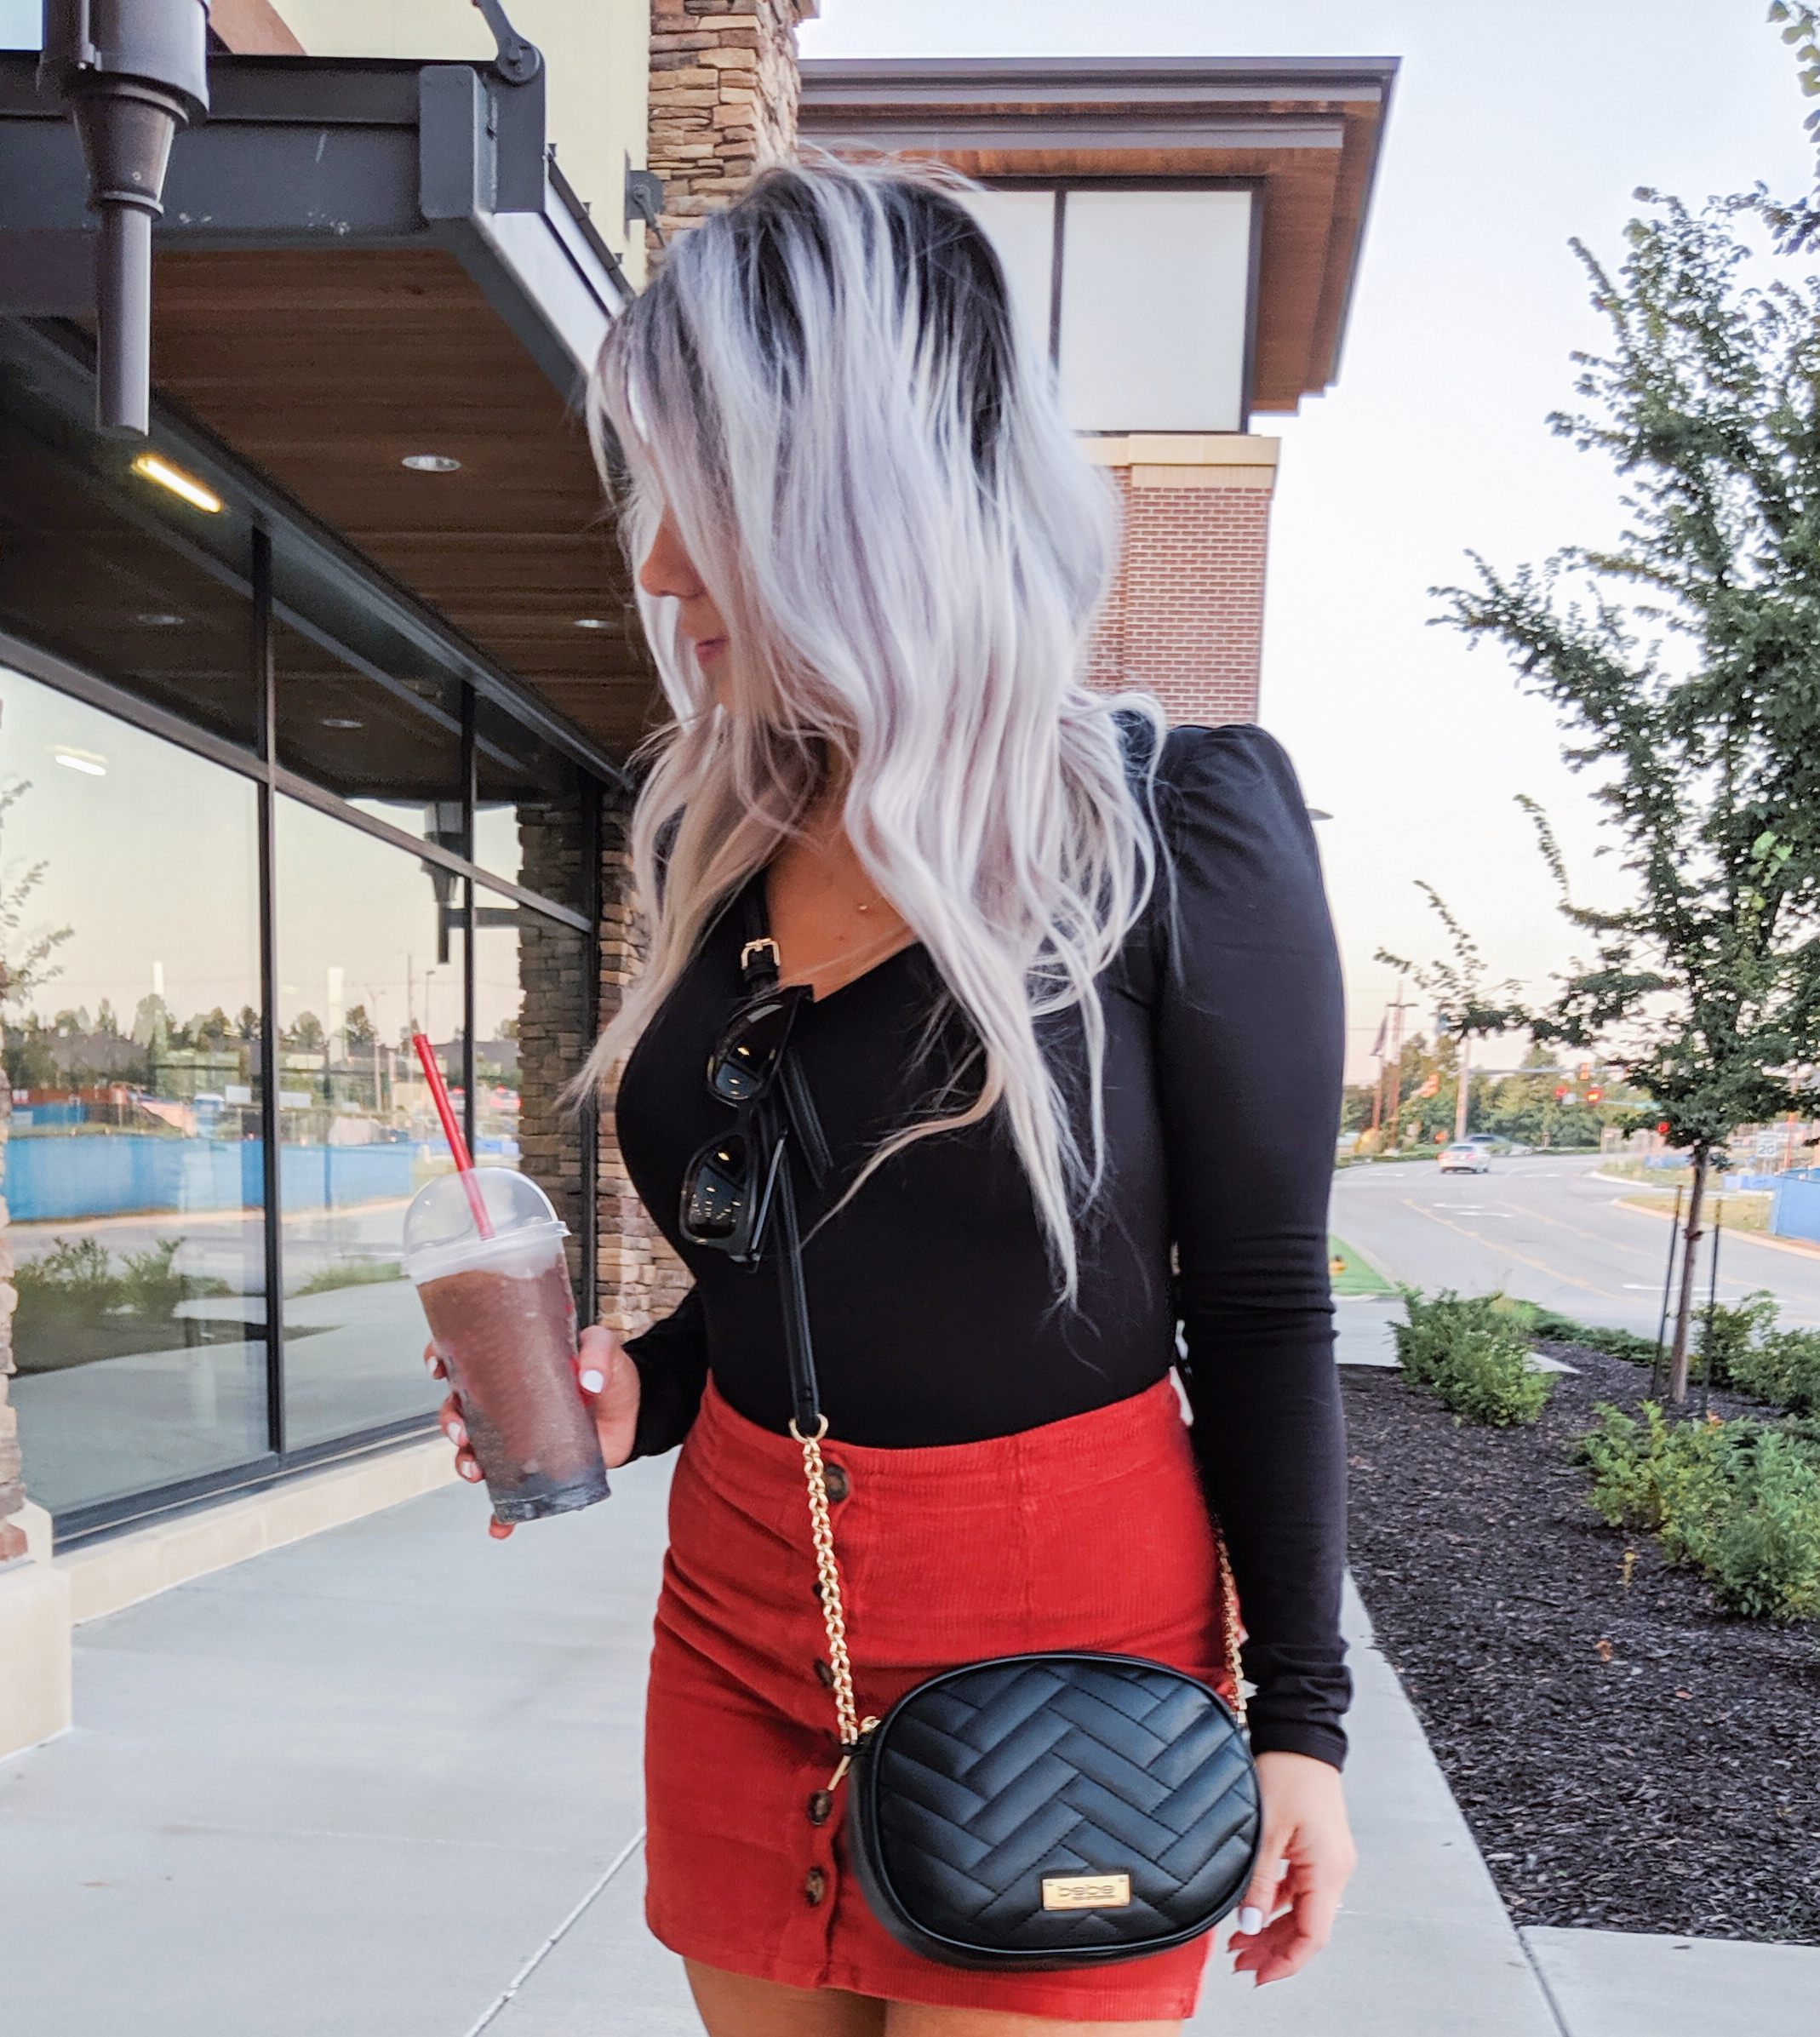 Corduroy Skirt Outfits - Fall Outfits 2019: (ad) Scored this black bodysuit, corduroy skirt, and crossbody bag at Gordmans during their Grand Opening Tour! I shopped the Gordmans in Dyersburg, TN and let me tell you, their prices are too good to pass up! Loving this cute button up corduroy skirt for fall 2019! #GotitatGordmans #GordmansGrandOpeningTour #gthanks